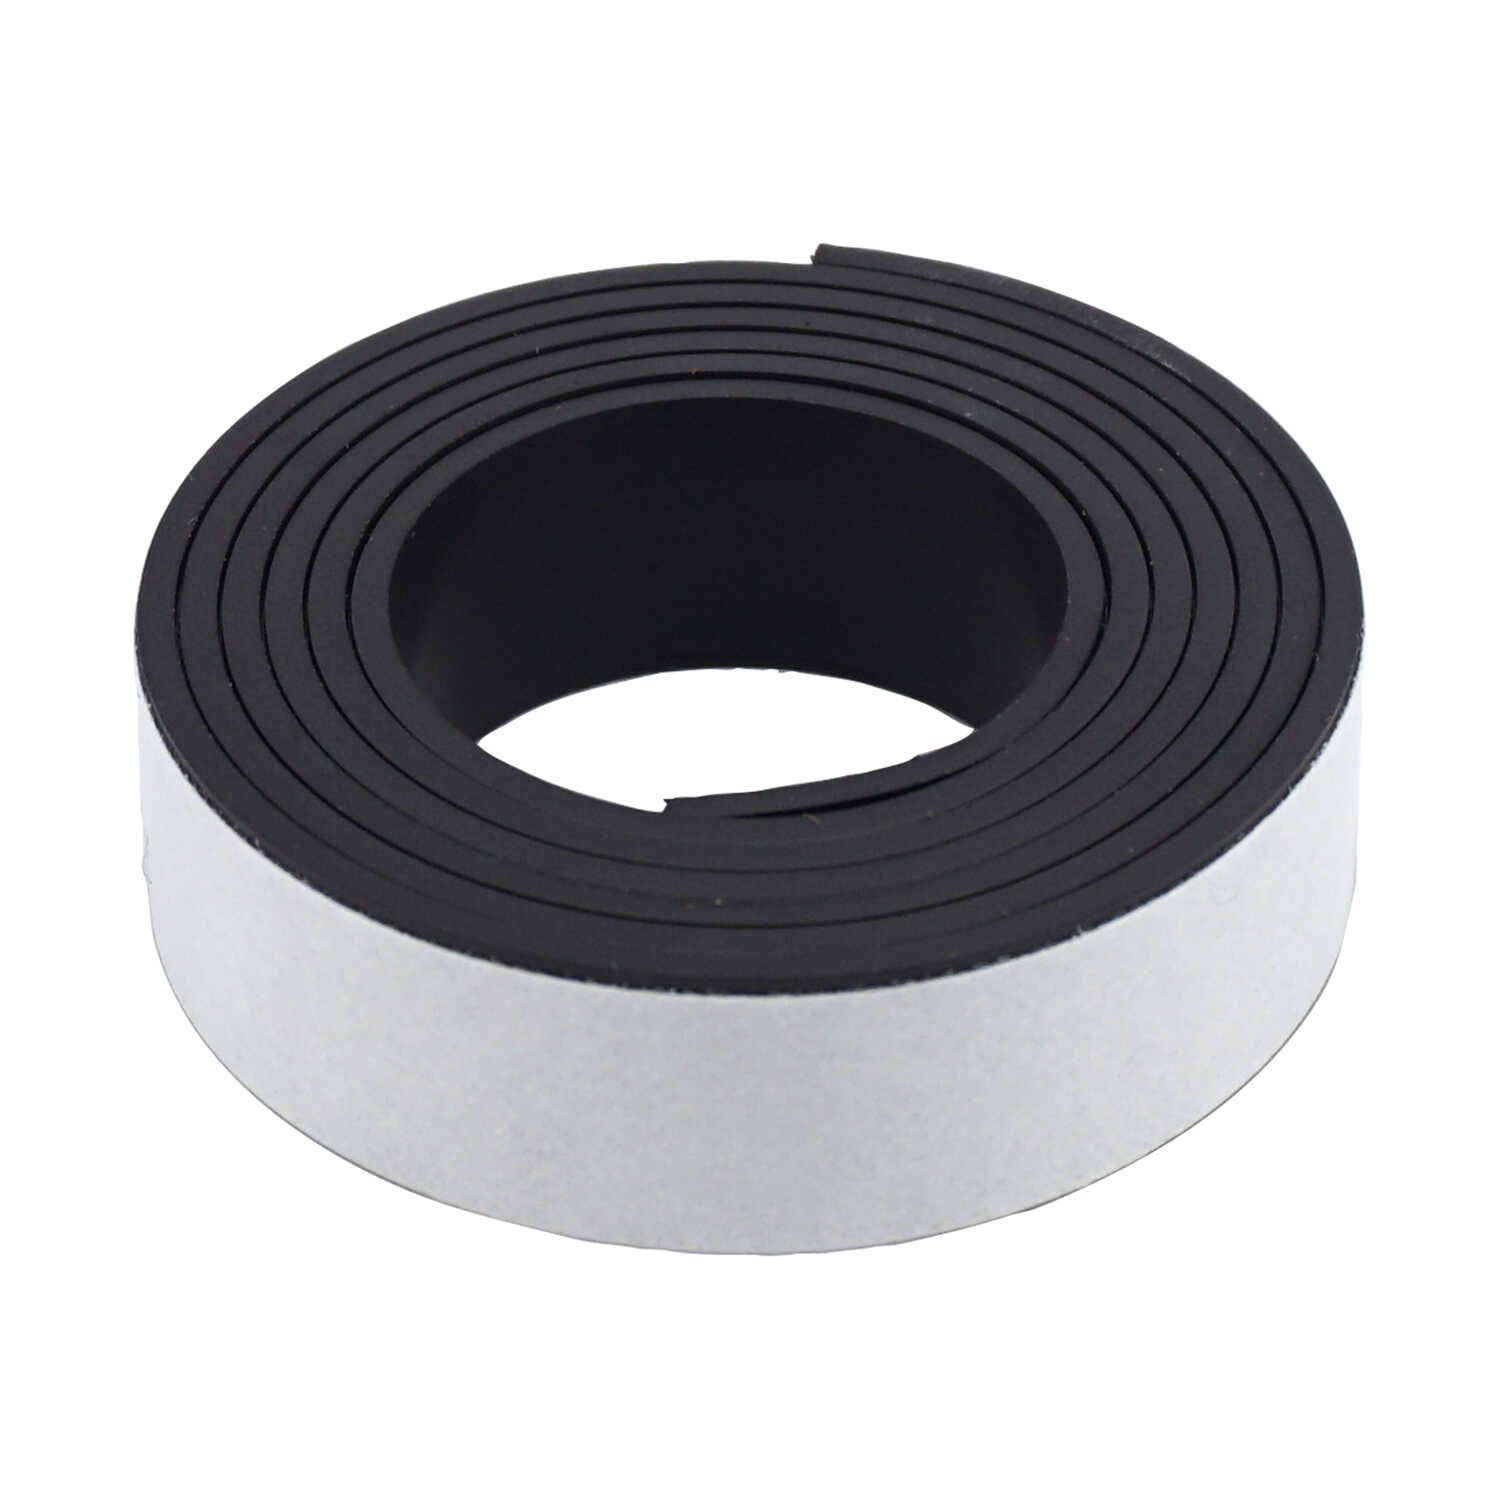 Master Magnetics  30 in. Ferrite Powder/Rubber Polymer Resin  Strip  Magnetic Tape  0.6 MGOe Black